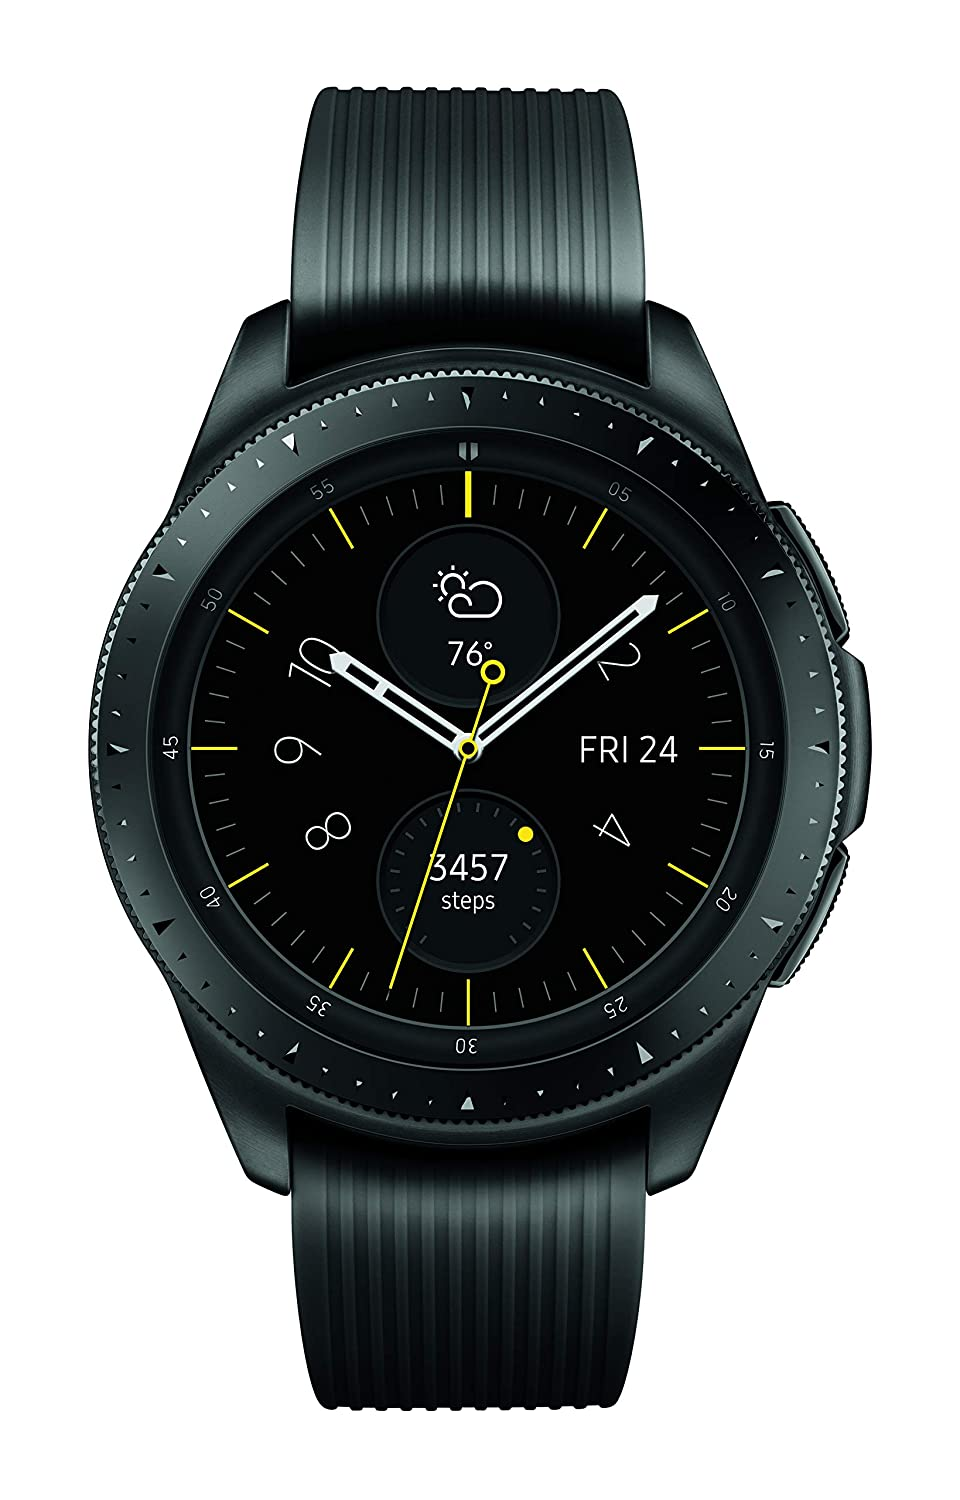 Samsung Galaxy Smartwatch (42mm) Midnight Black (Bluetooth) SM-R810NZKAXAR – US Version with Warranty